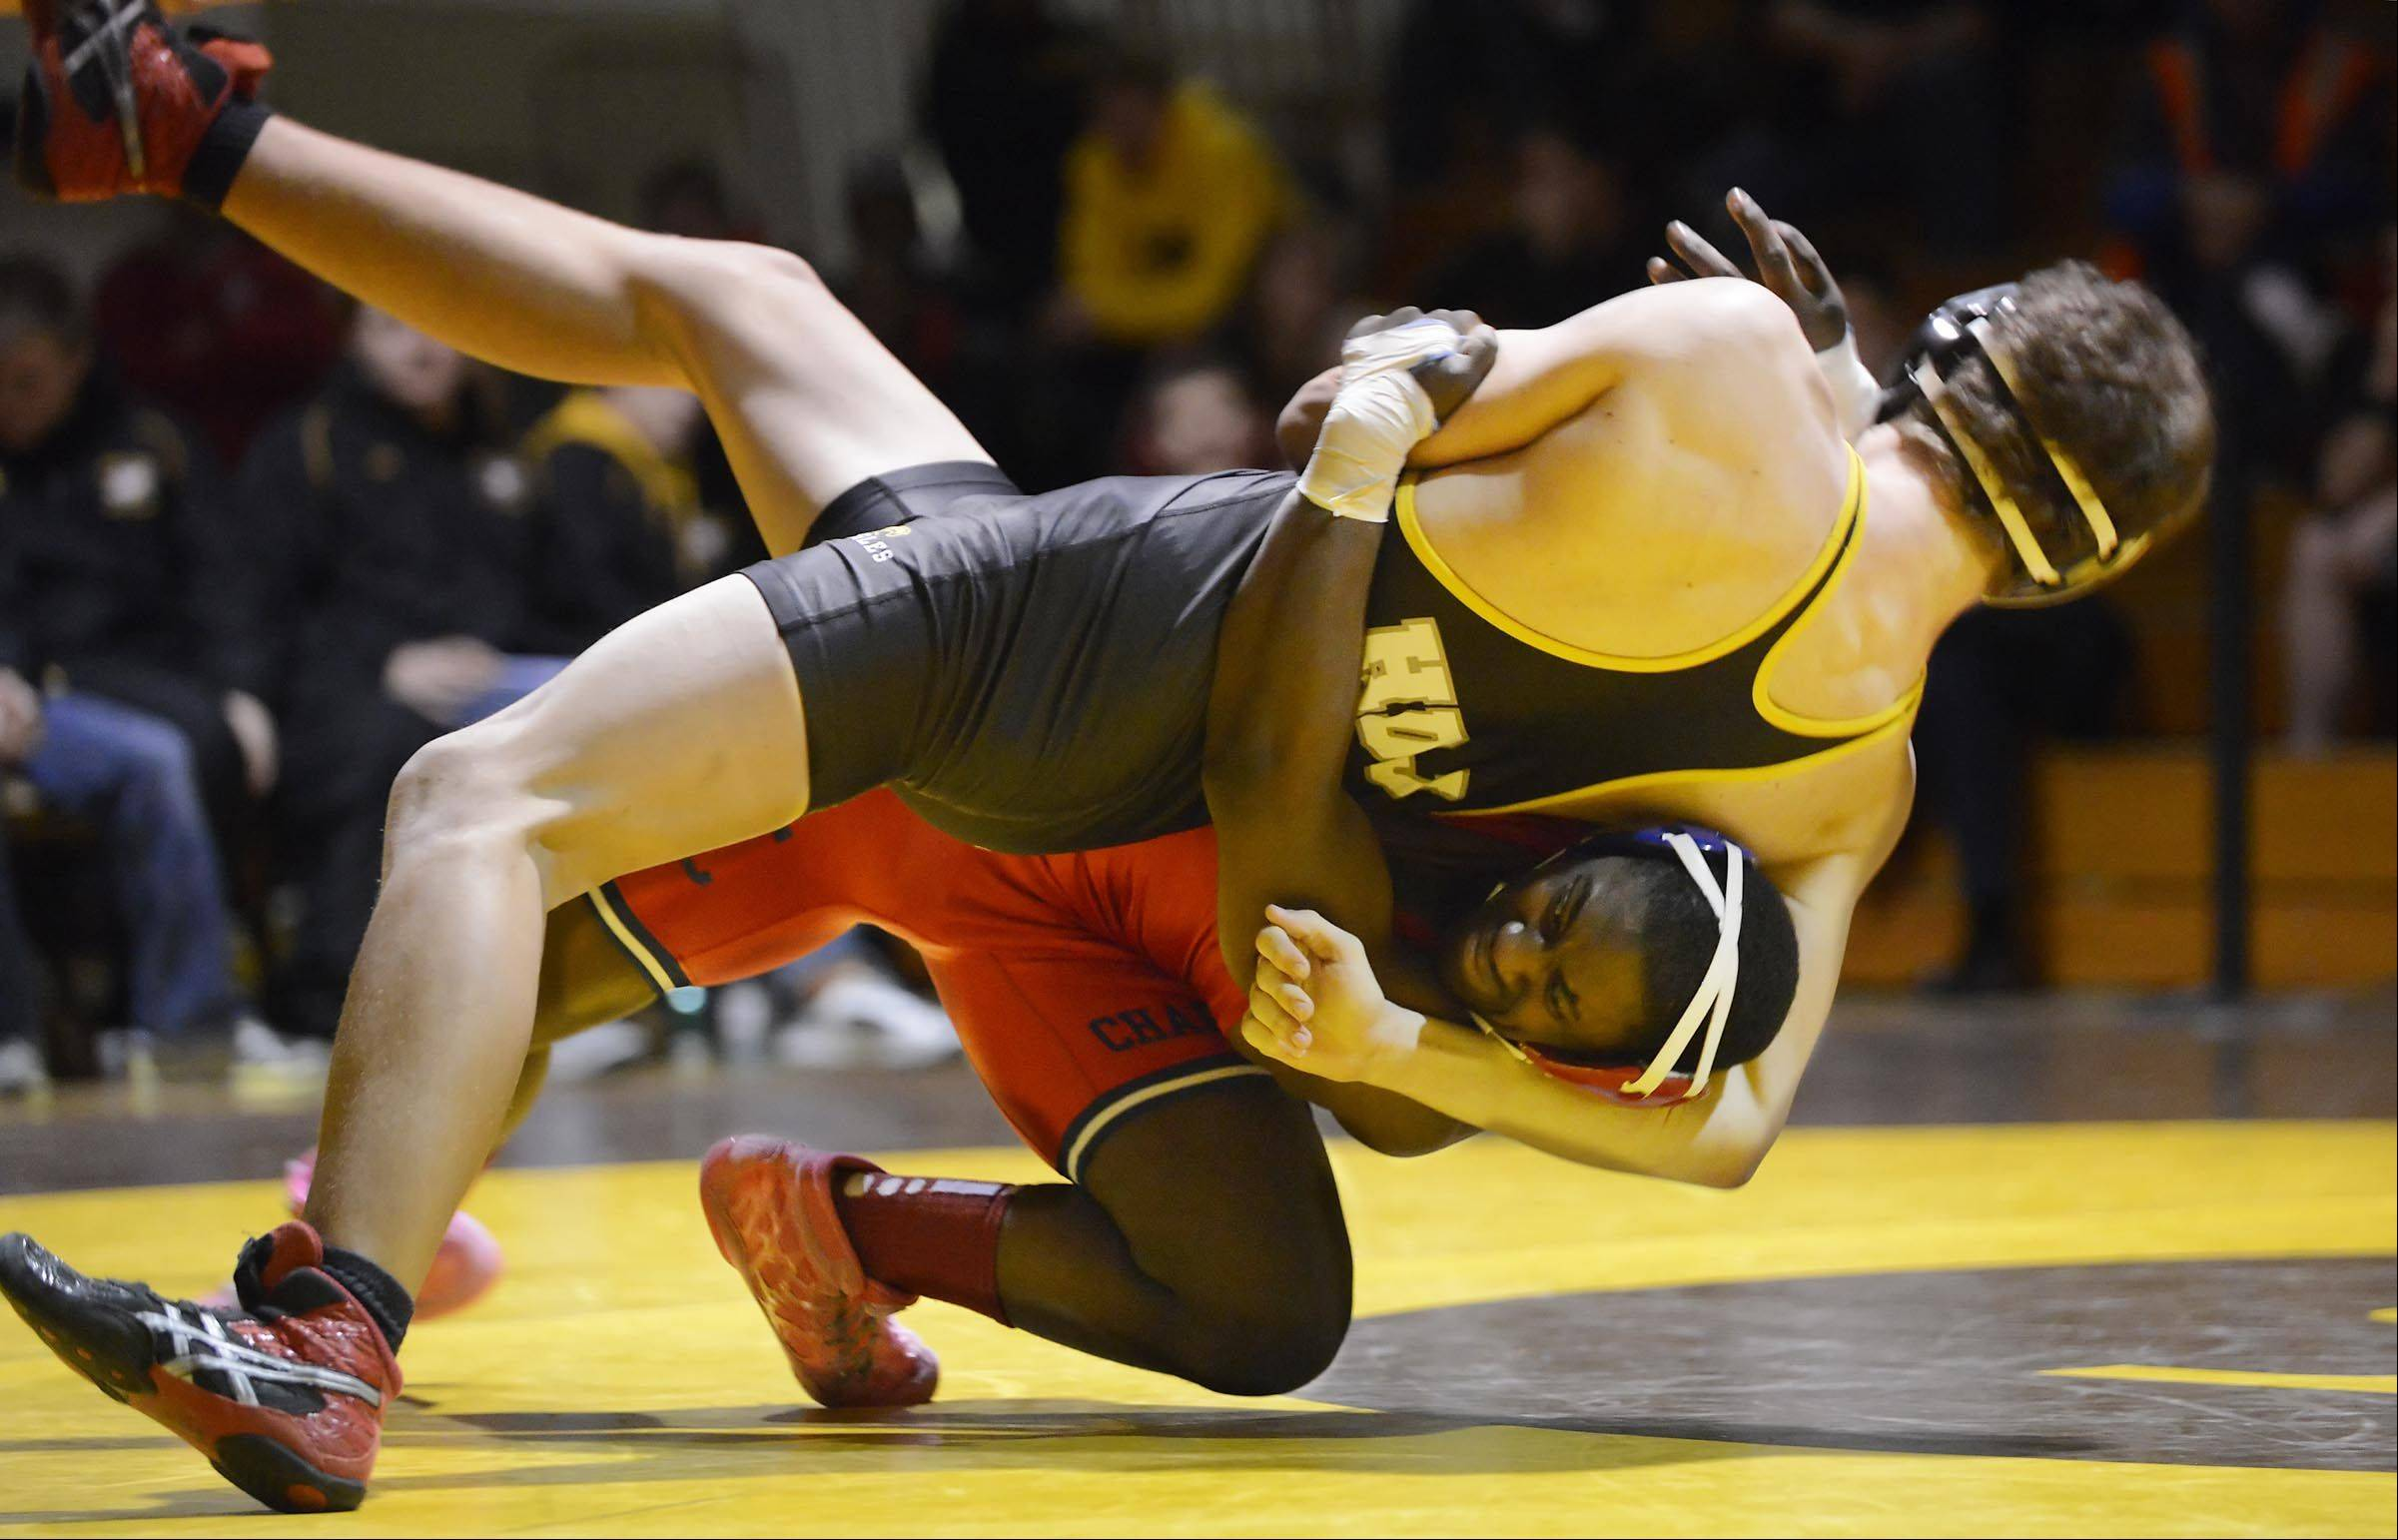 Dundee-Crown�s DaShun Lloyd brings down Jacobs� Michael Bujocz Thursday in the 170-pound match in Algonquin. Bujocz was awarded the win after the referees determined Lloyd lost consciousness during the match and by rule was disqualified.